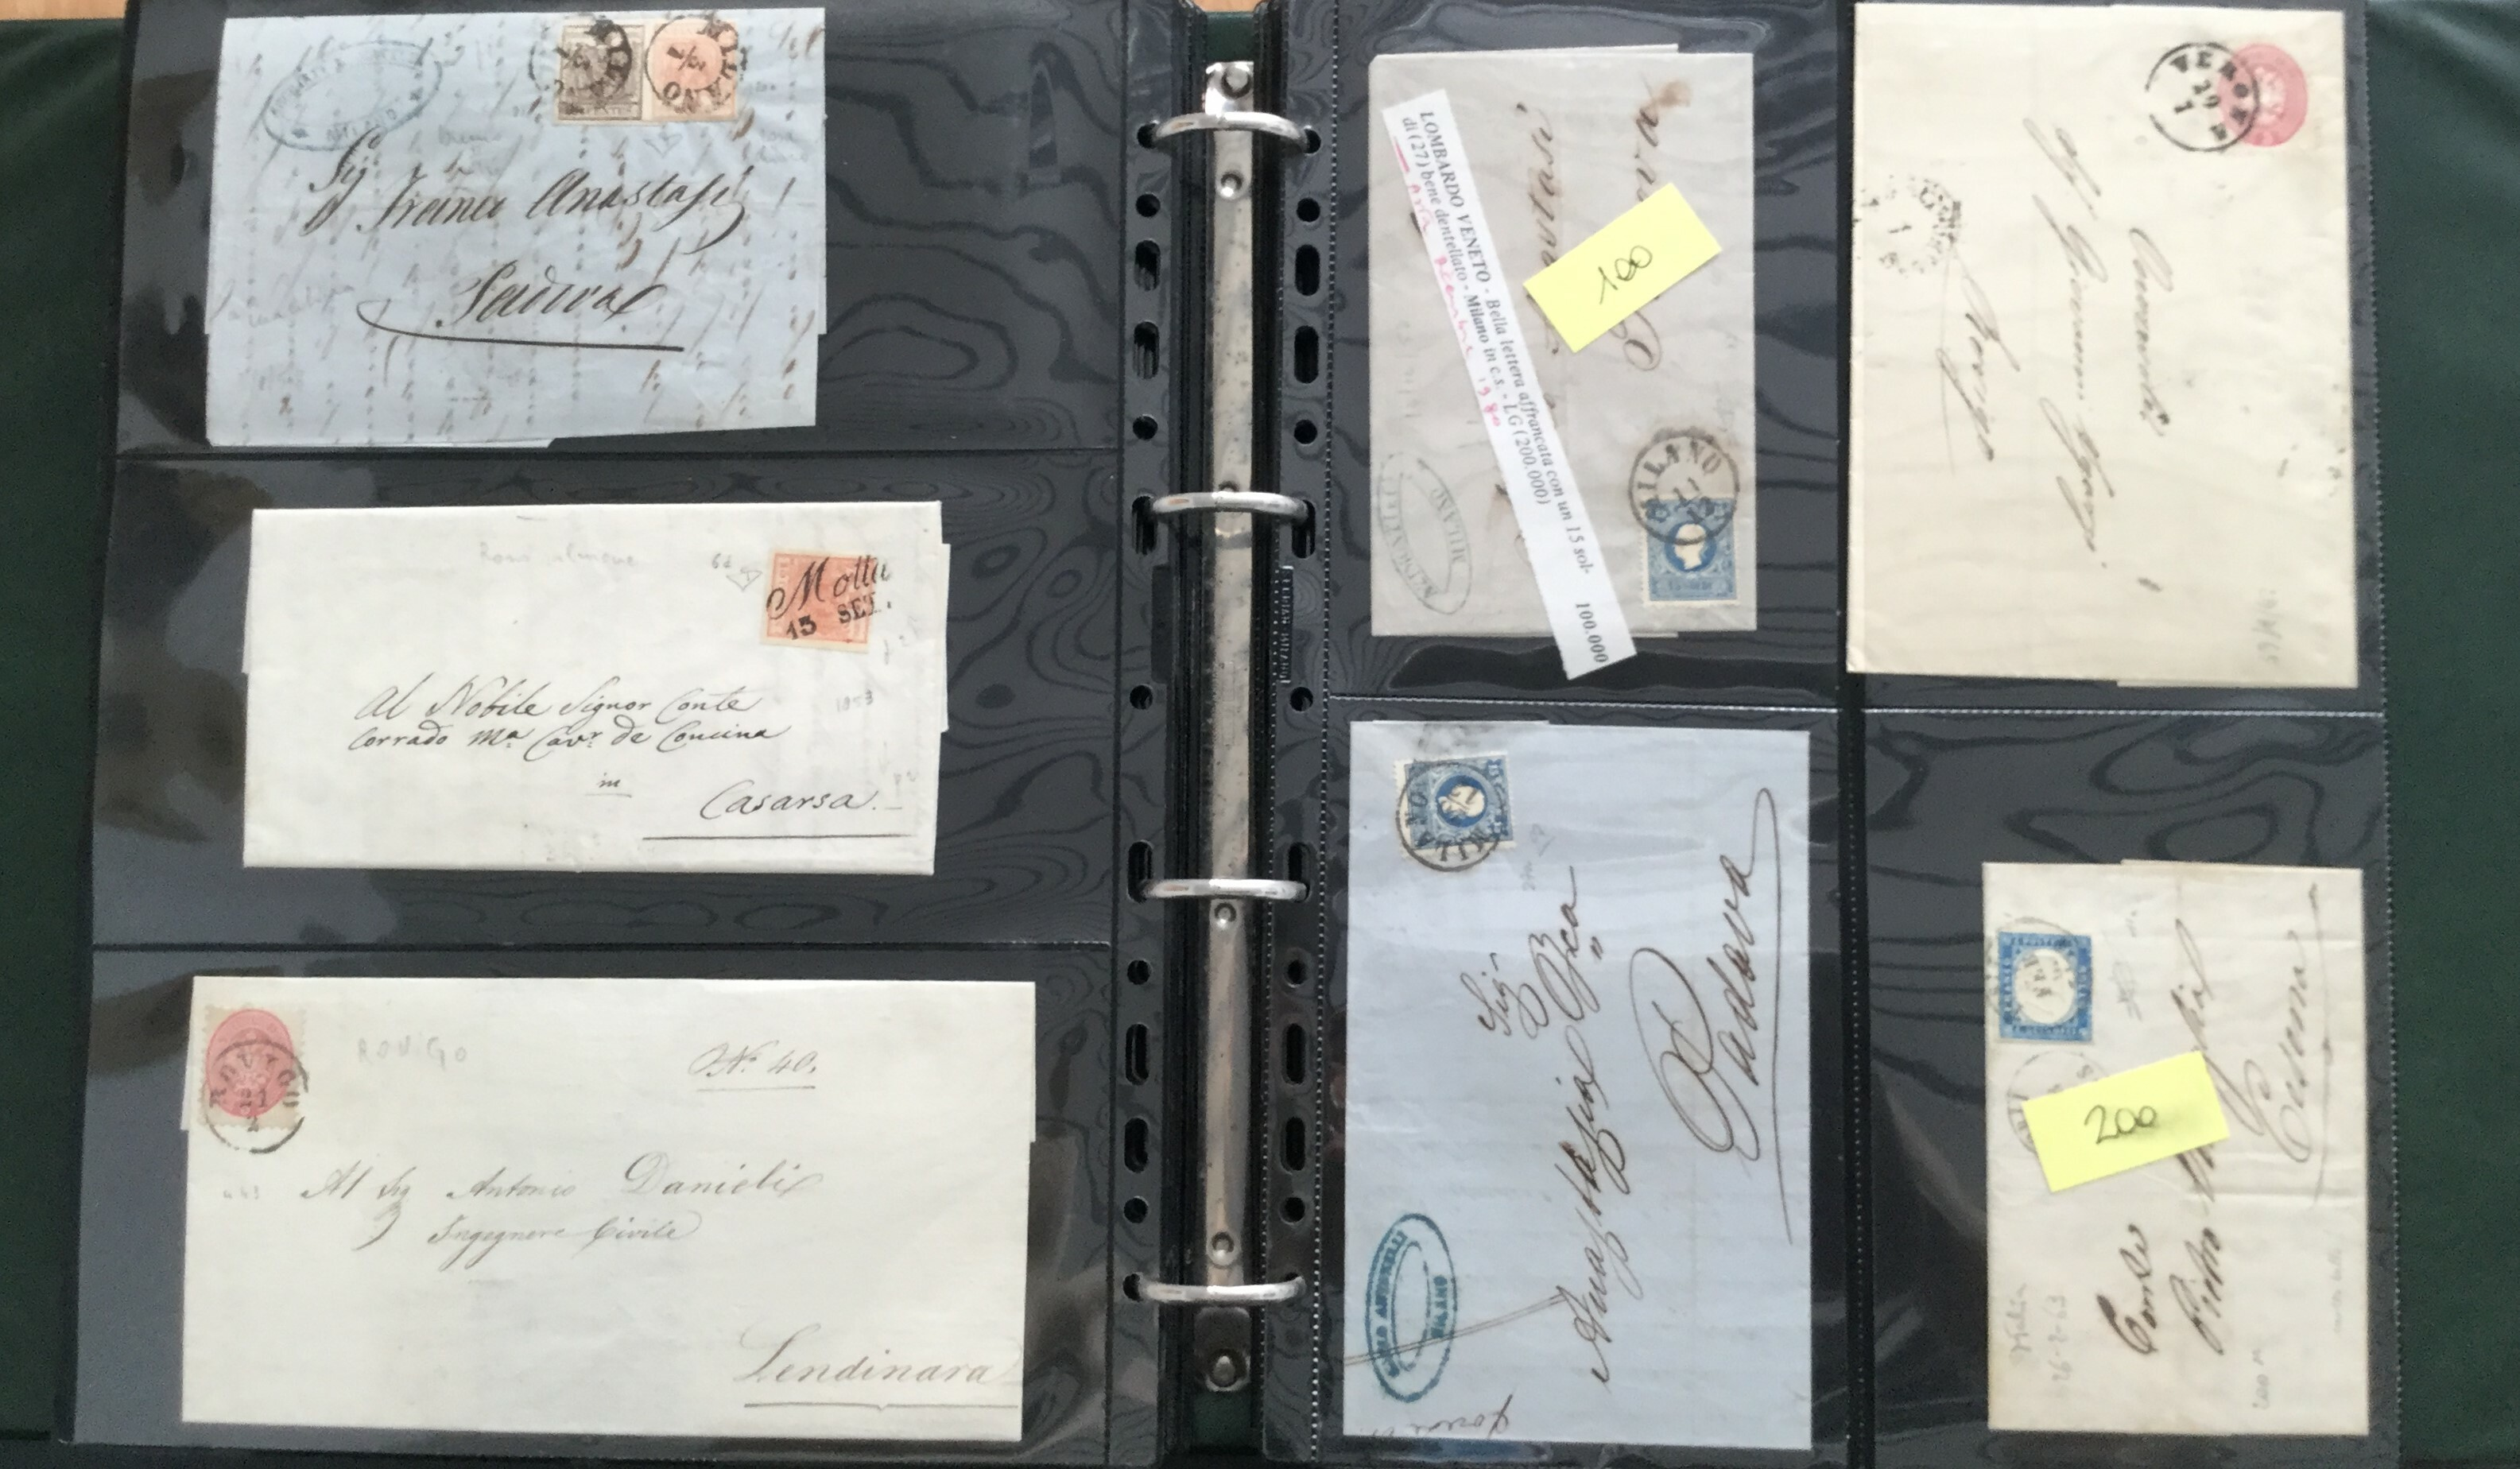 Lot 2506 - ANTICHI STATI, REGNO D'ITALIA Lots & Collections -  Ponte Auction House Stamps Auction 505